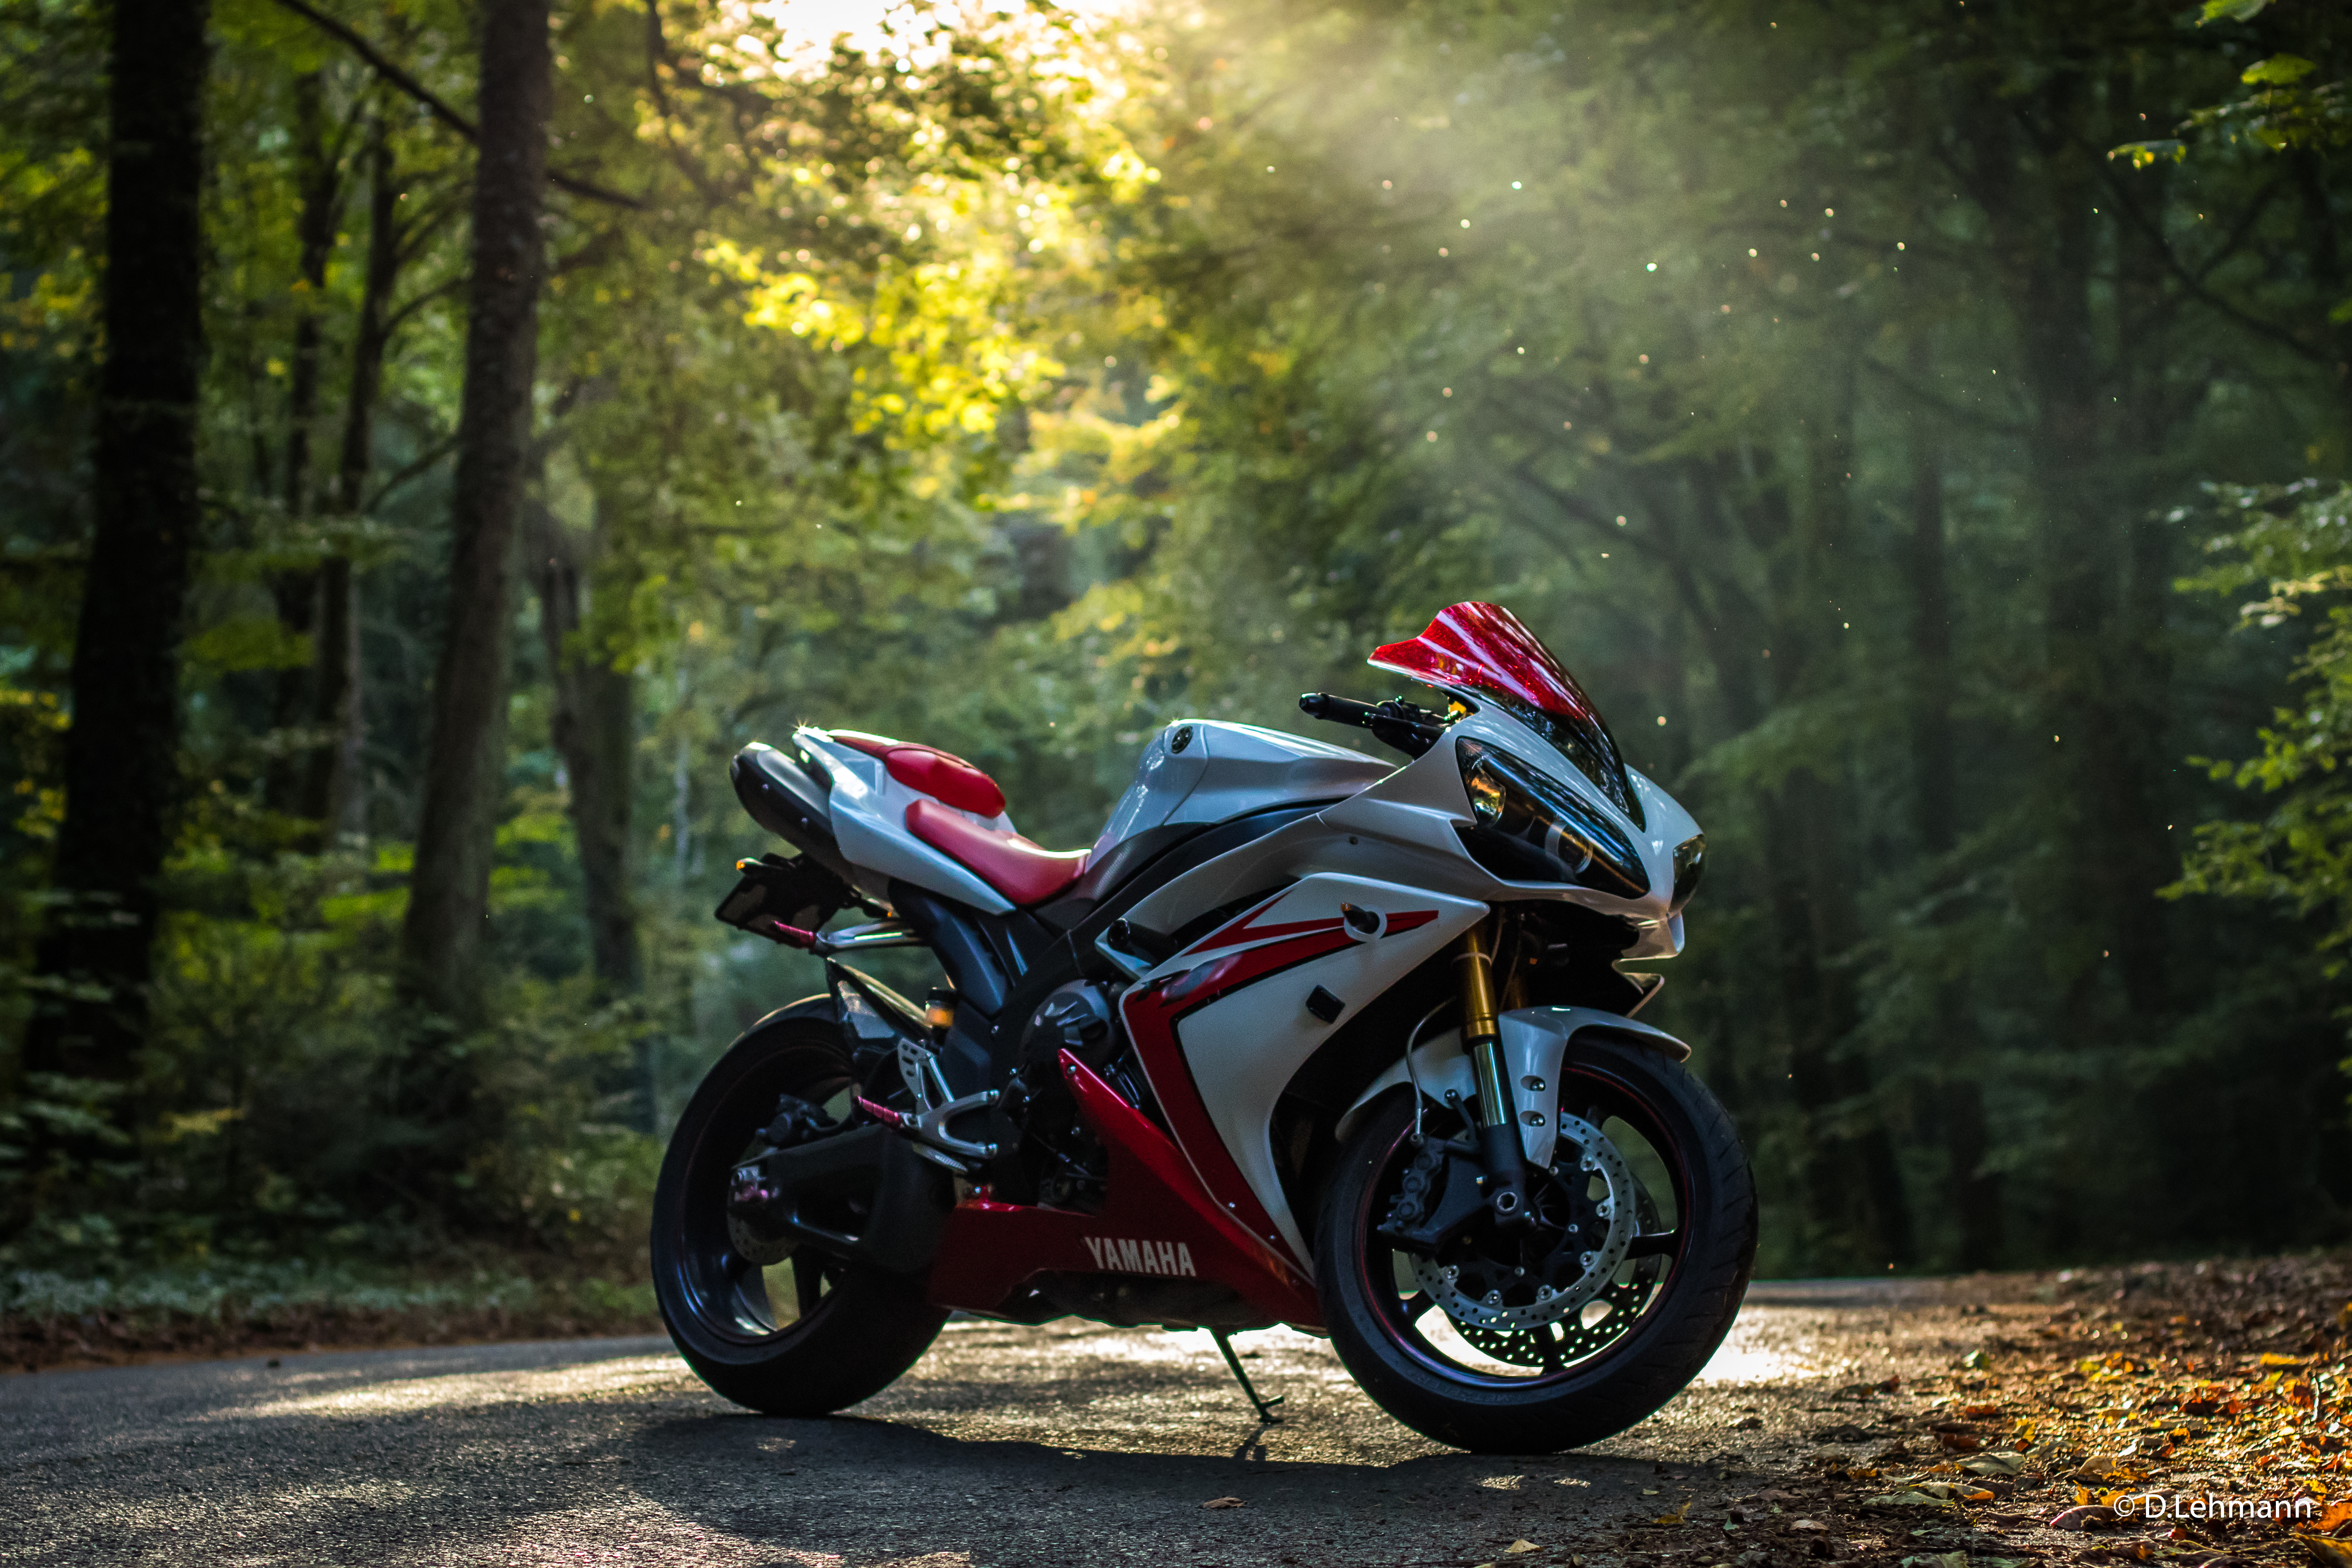 1920x1080 Yamaha R1 5k Laptop Full Hd 1080p Hd 4k Wallpapers Images Backgrounds Photos And Pictures